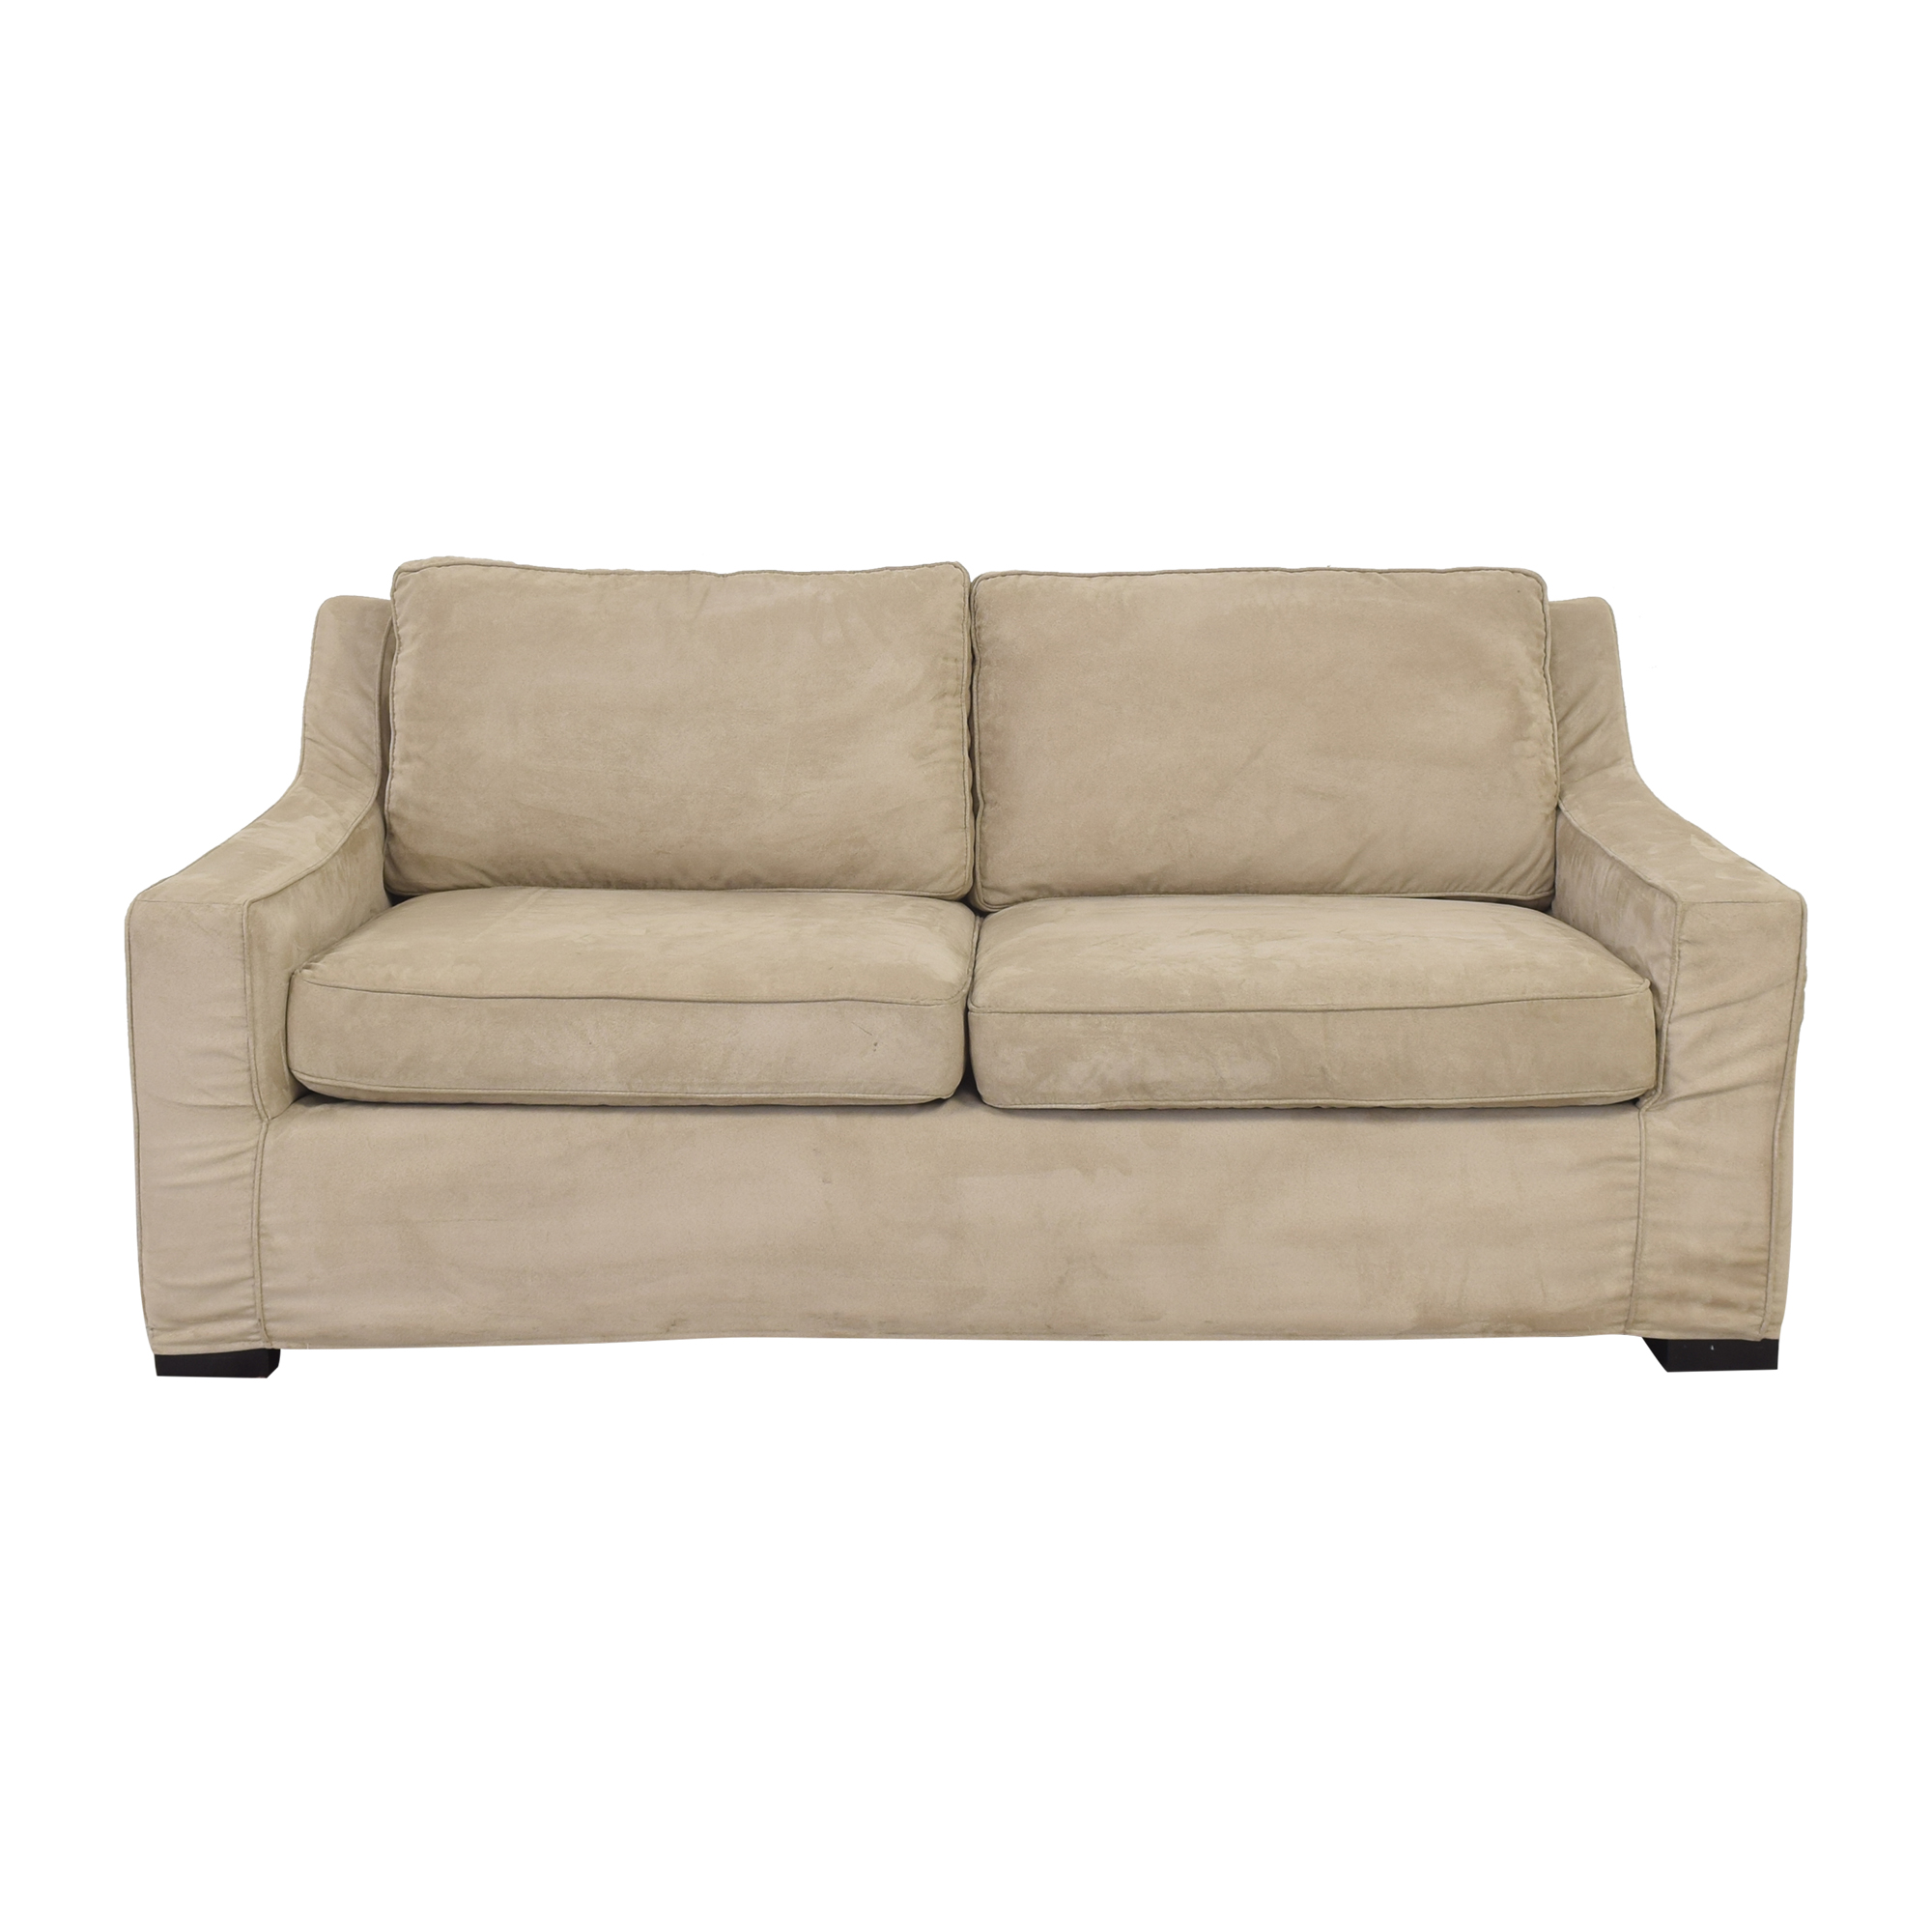 Crate & Barrel Two Cushion Sofa / Classic Sofas